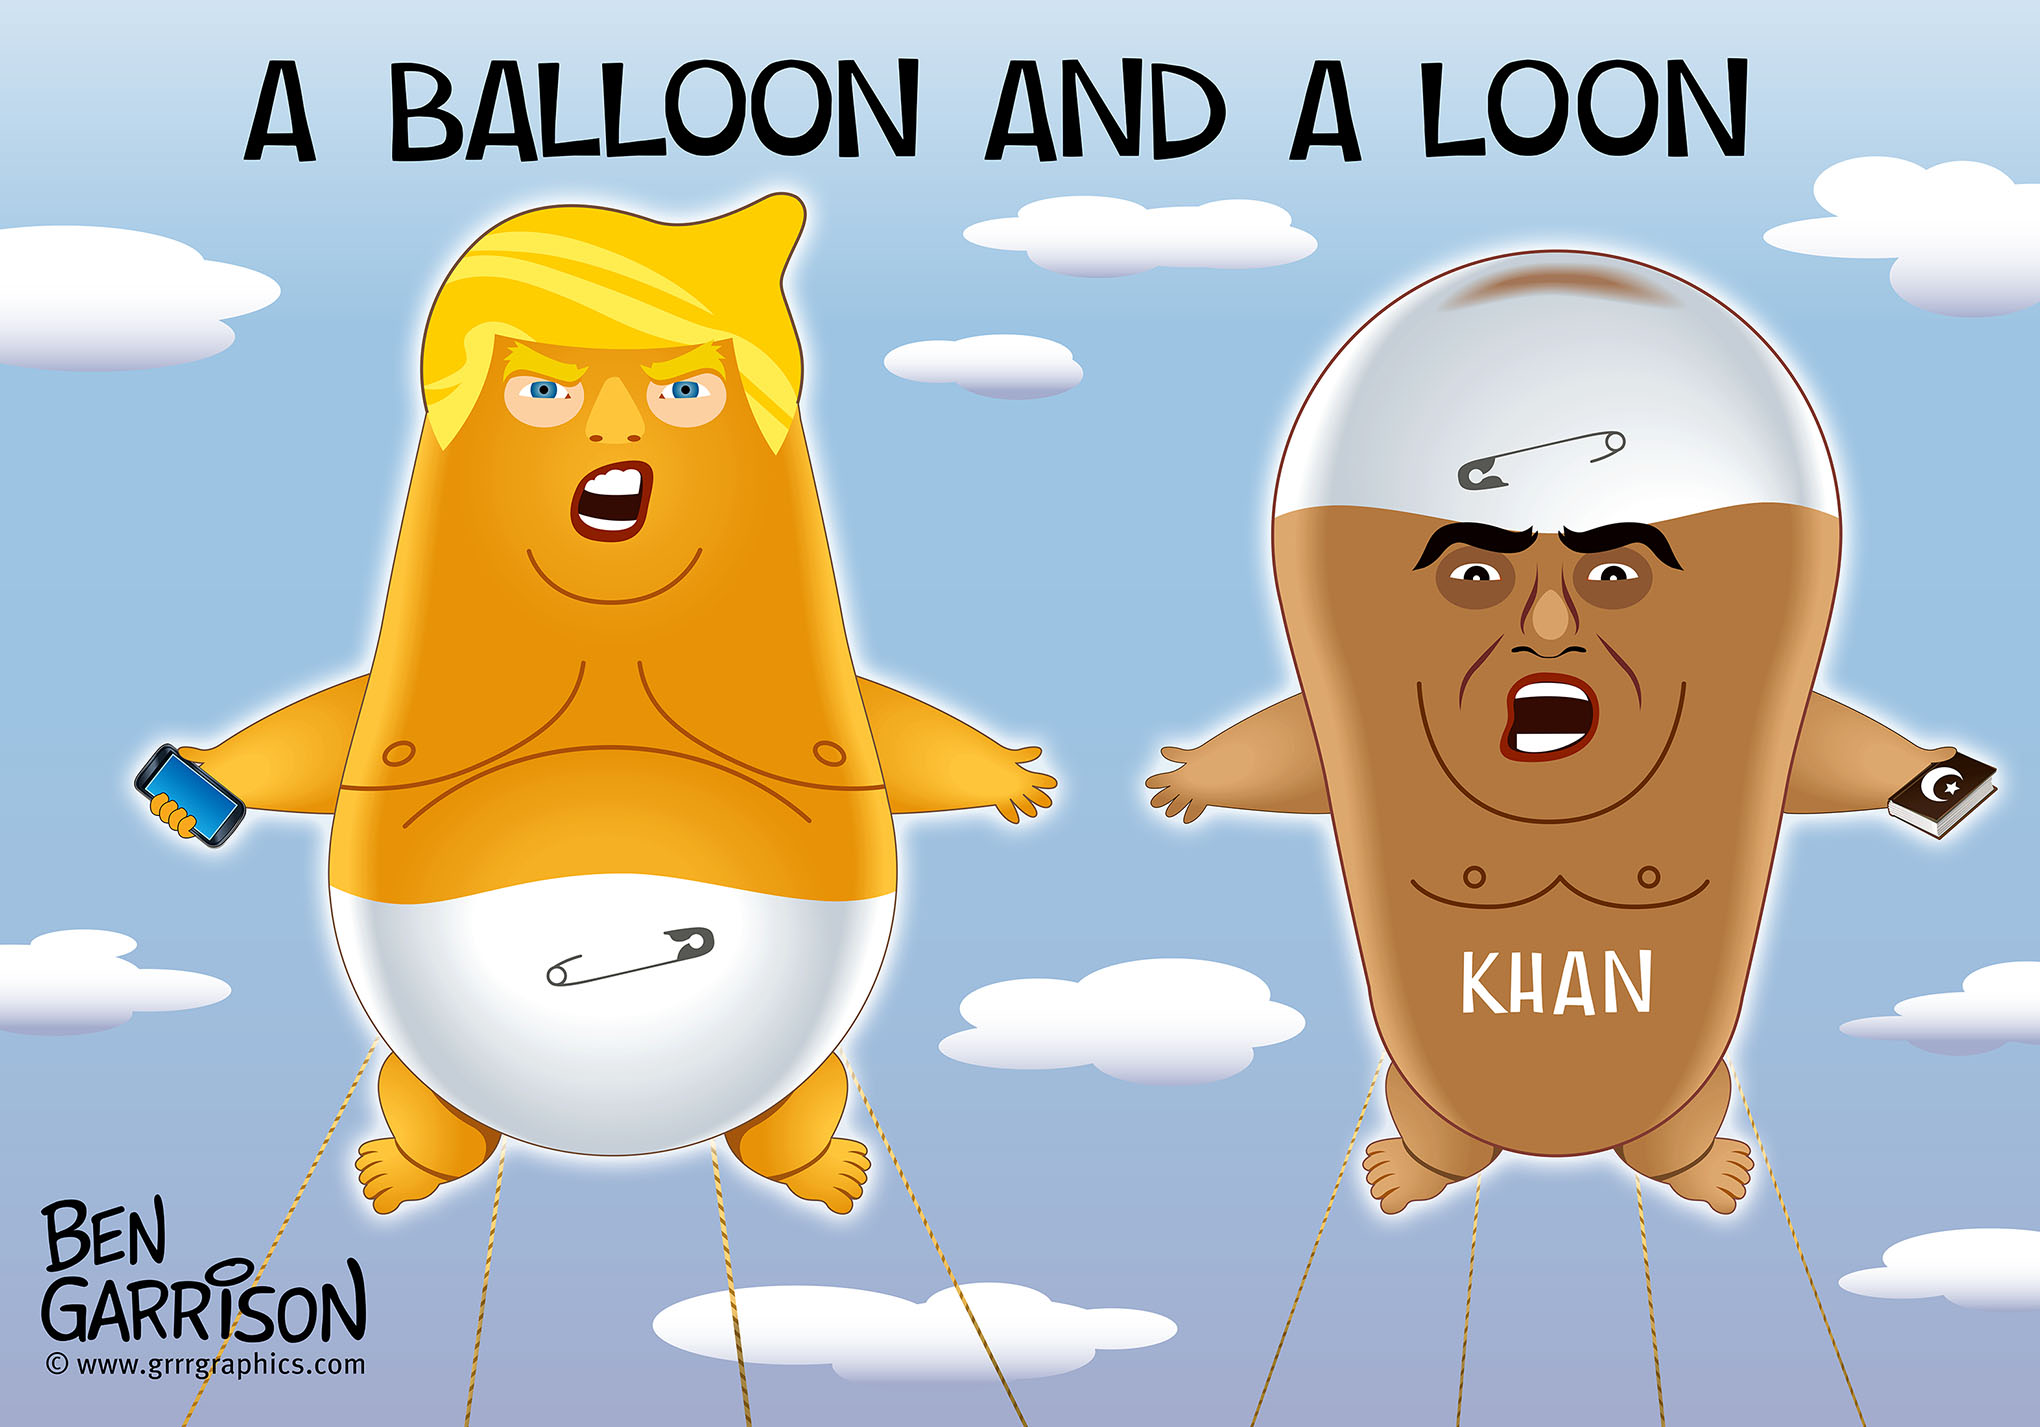 london_trump_khan_balloons.jpg